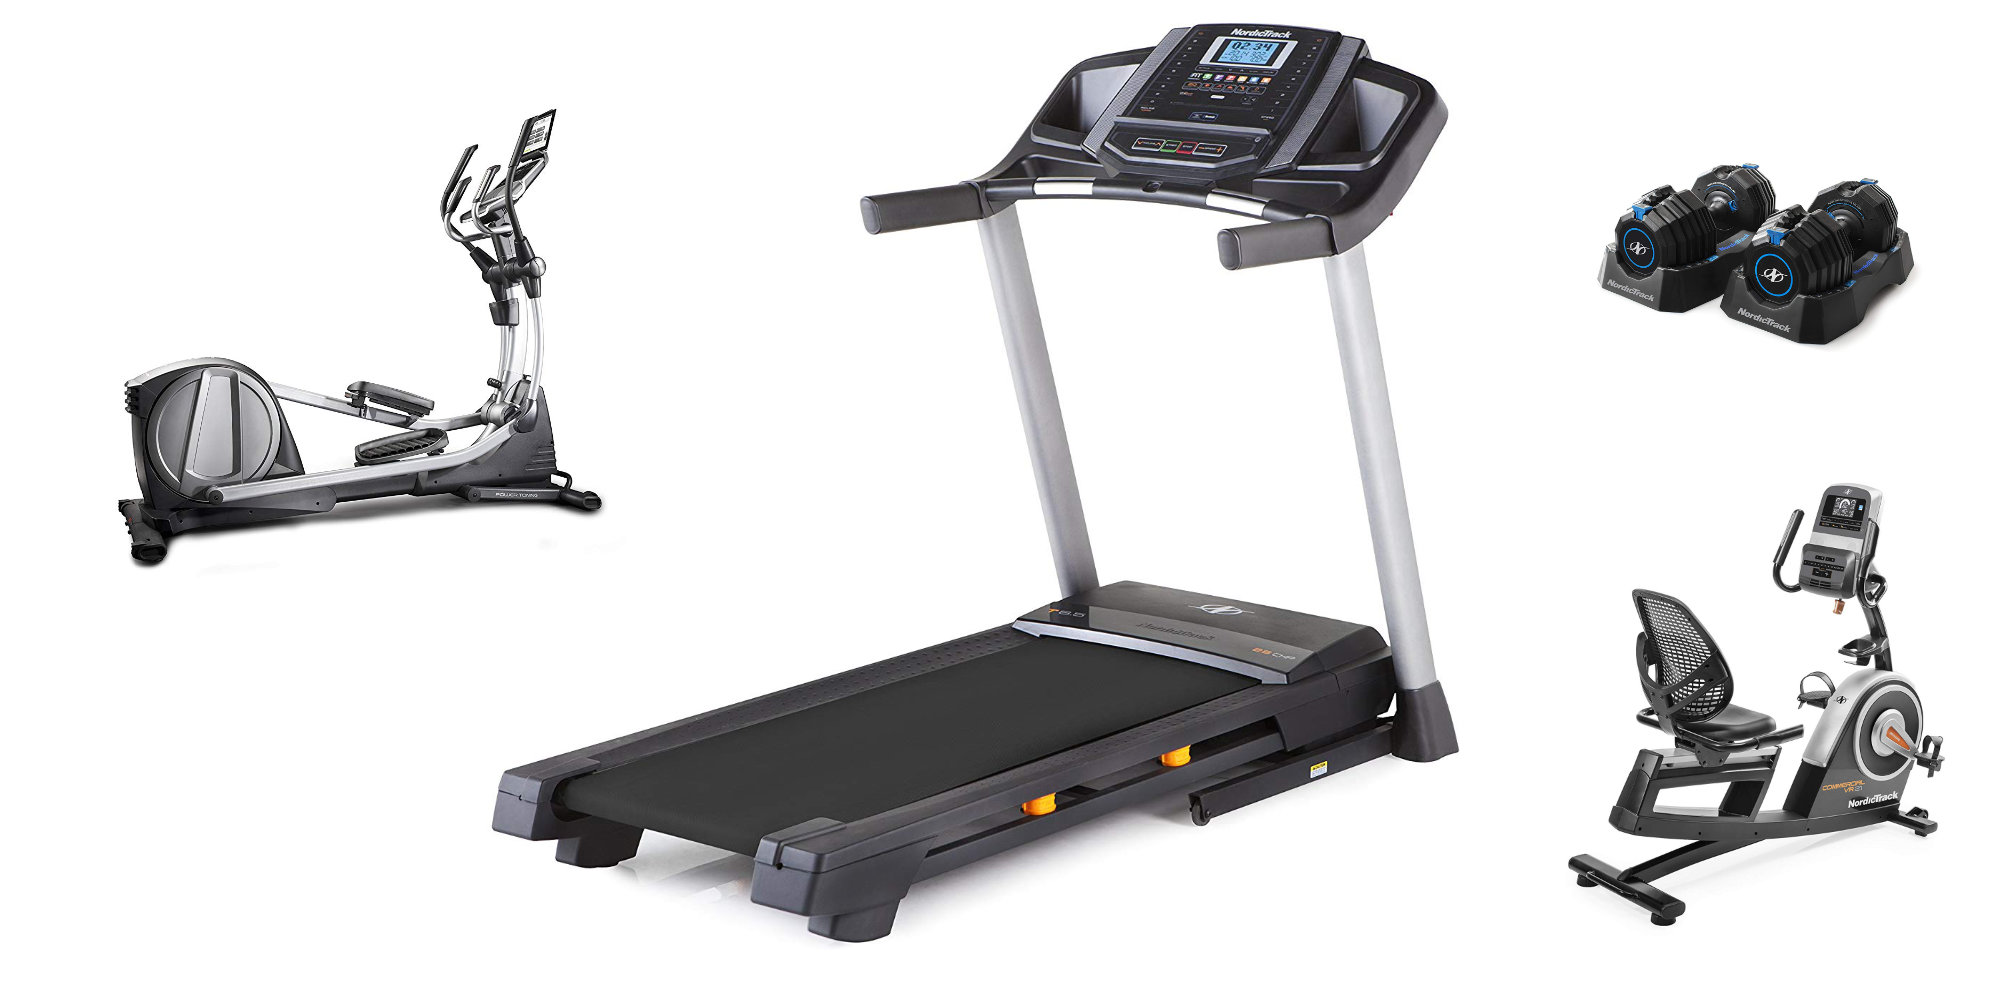 amazon offers up to 40  off nordictrack fitness equipment